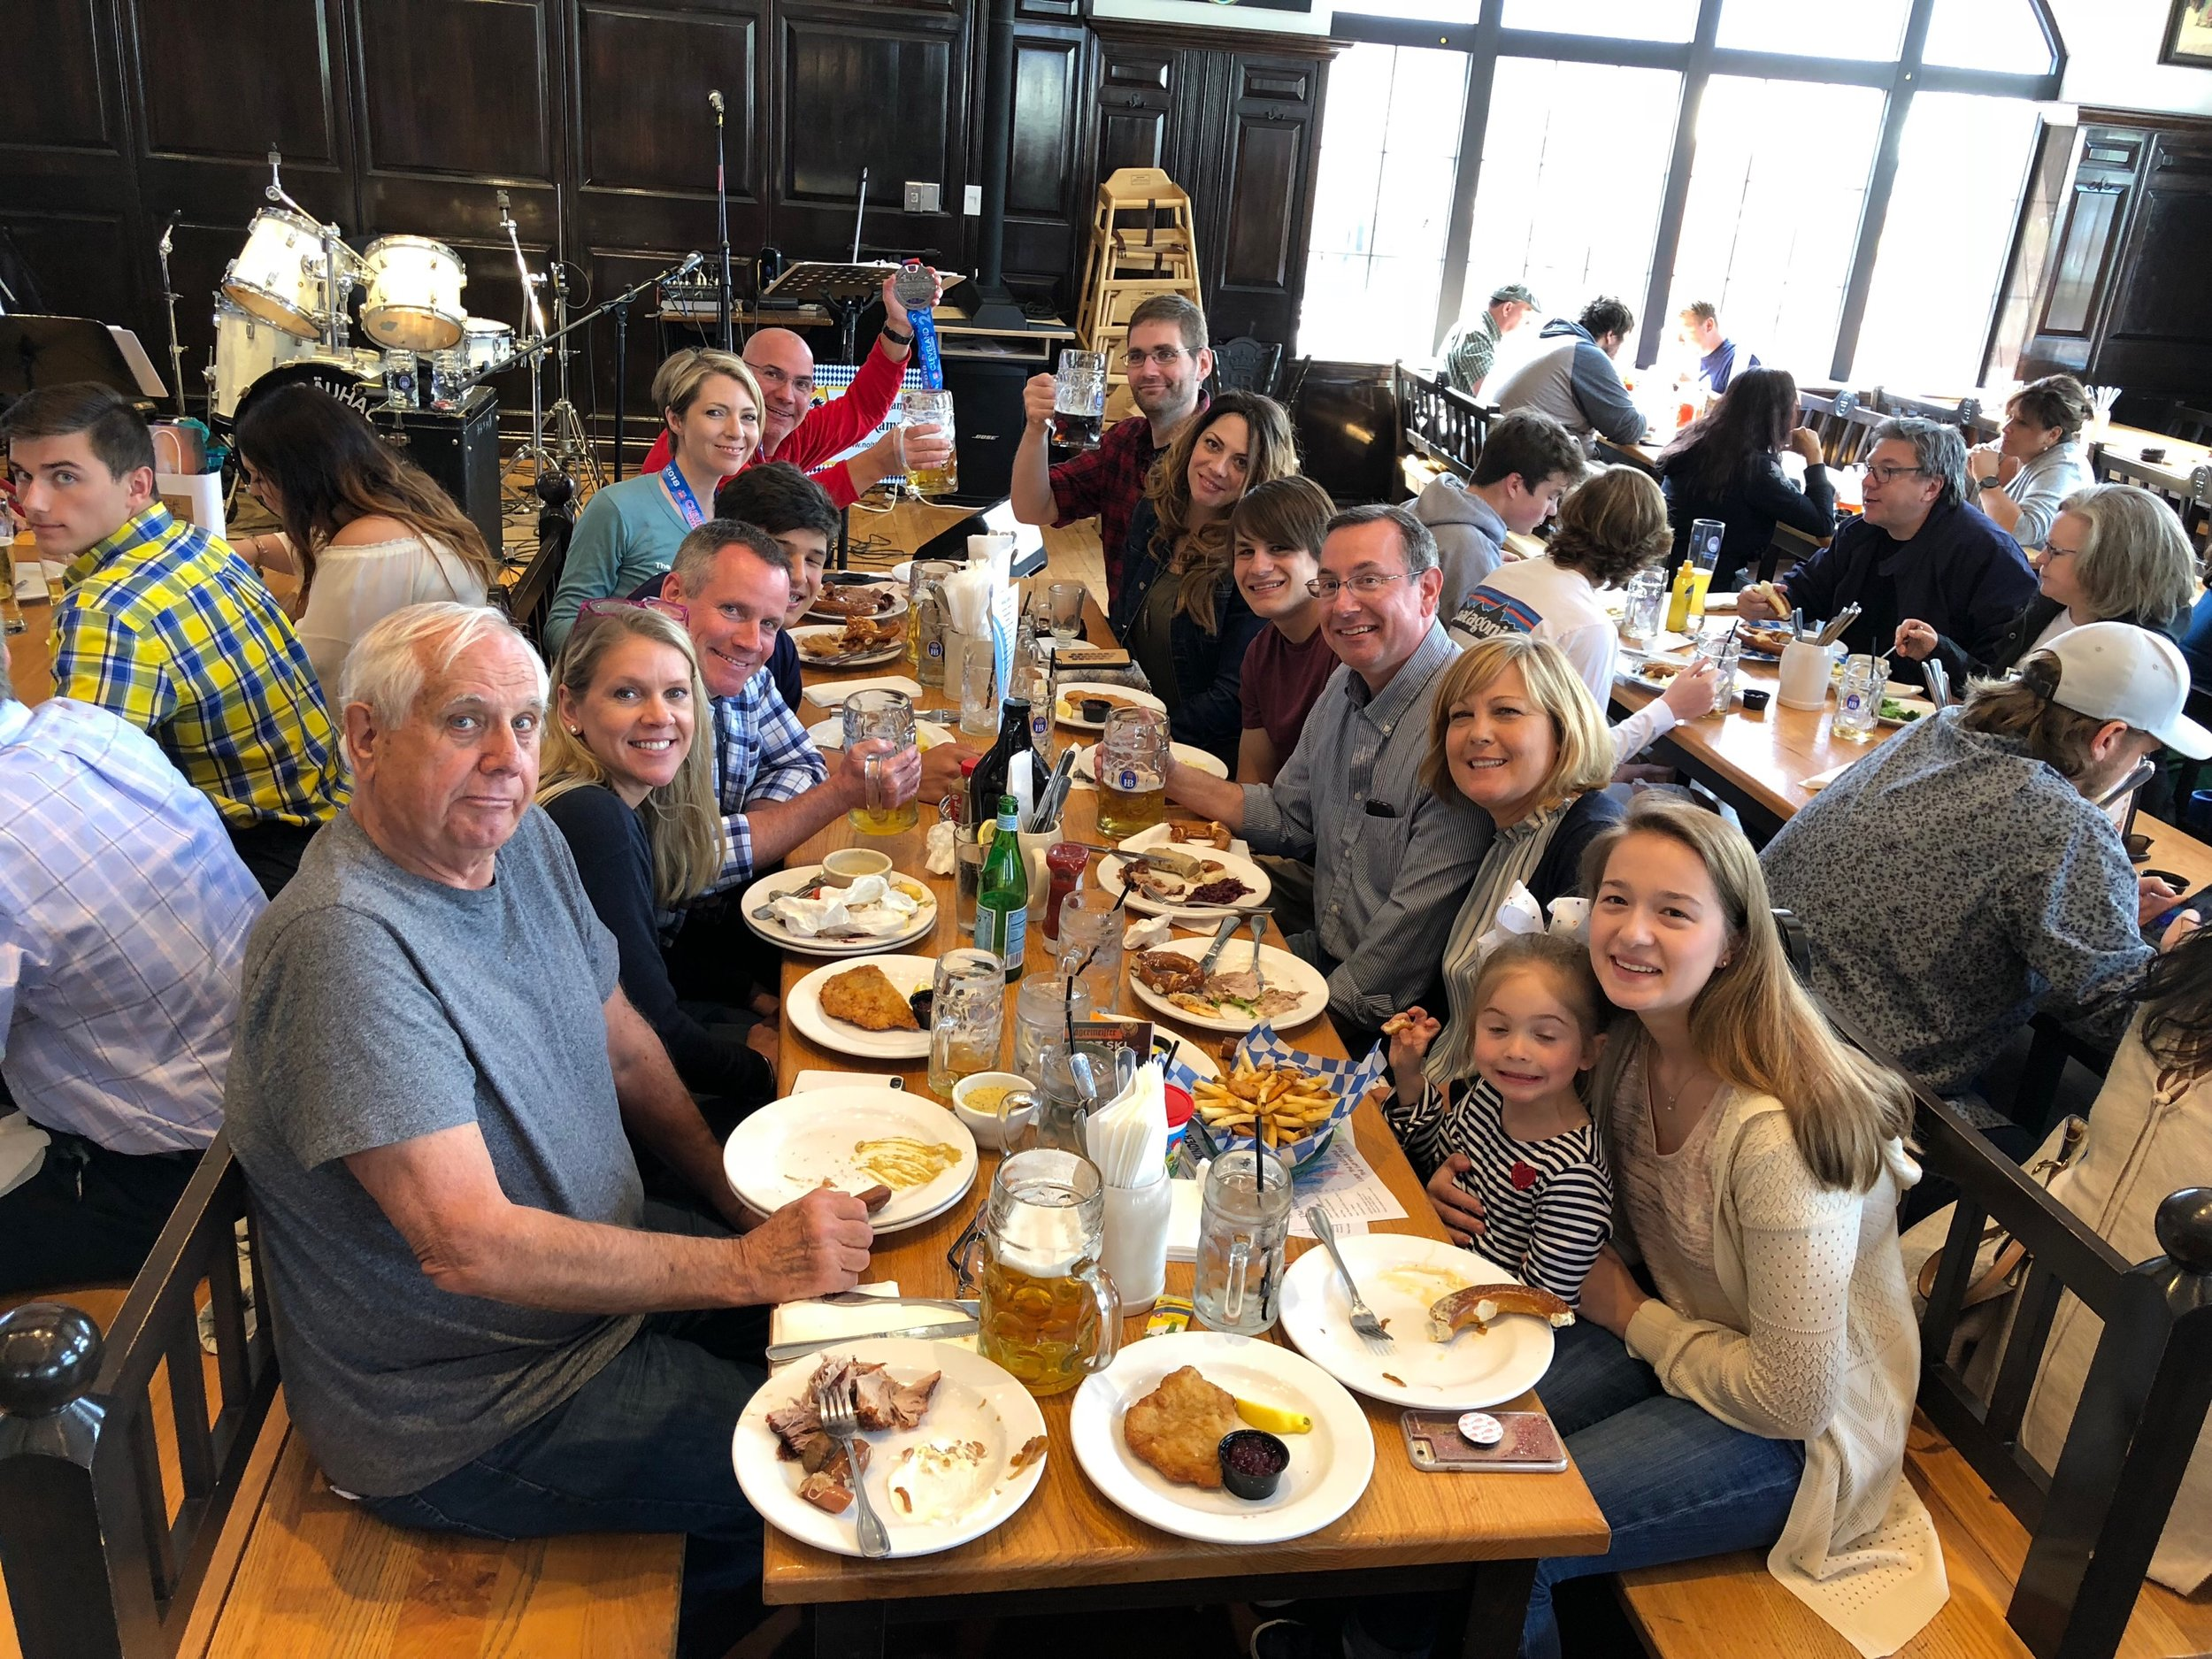 Team Castner and friends celebrating Erica and Ed's Cleveland Marathon finish on May 20, 2018.